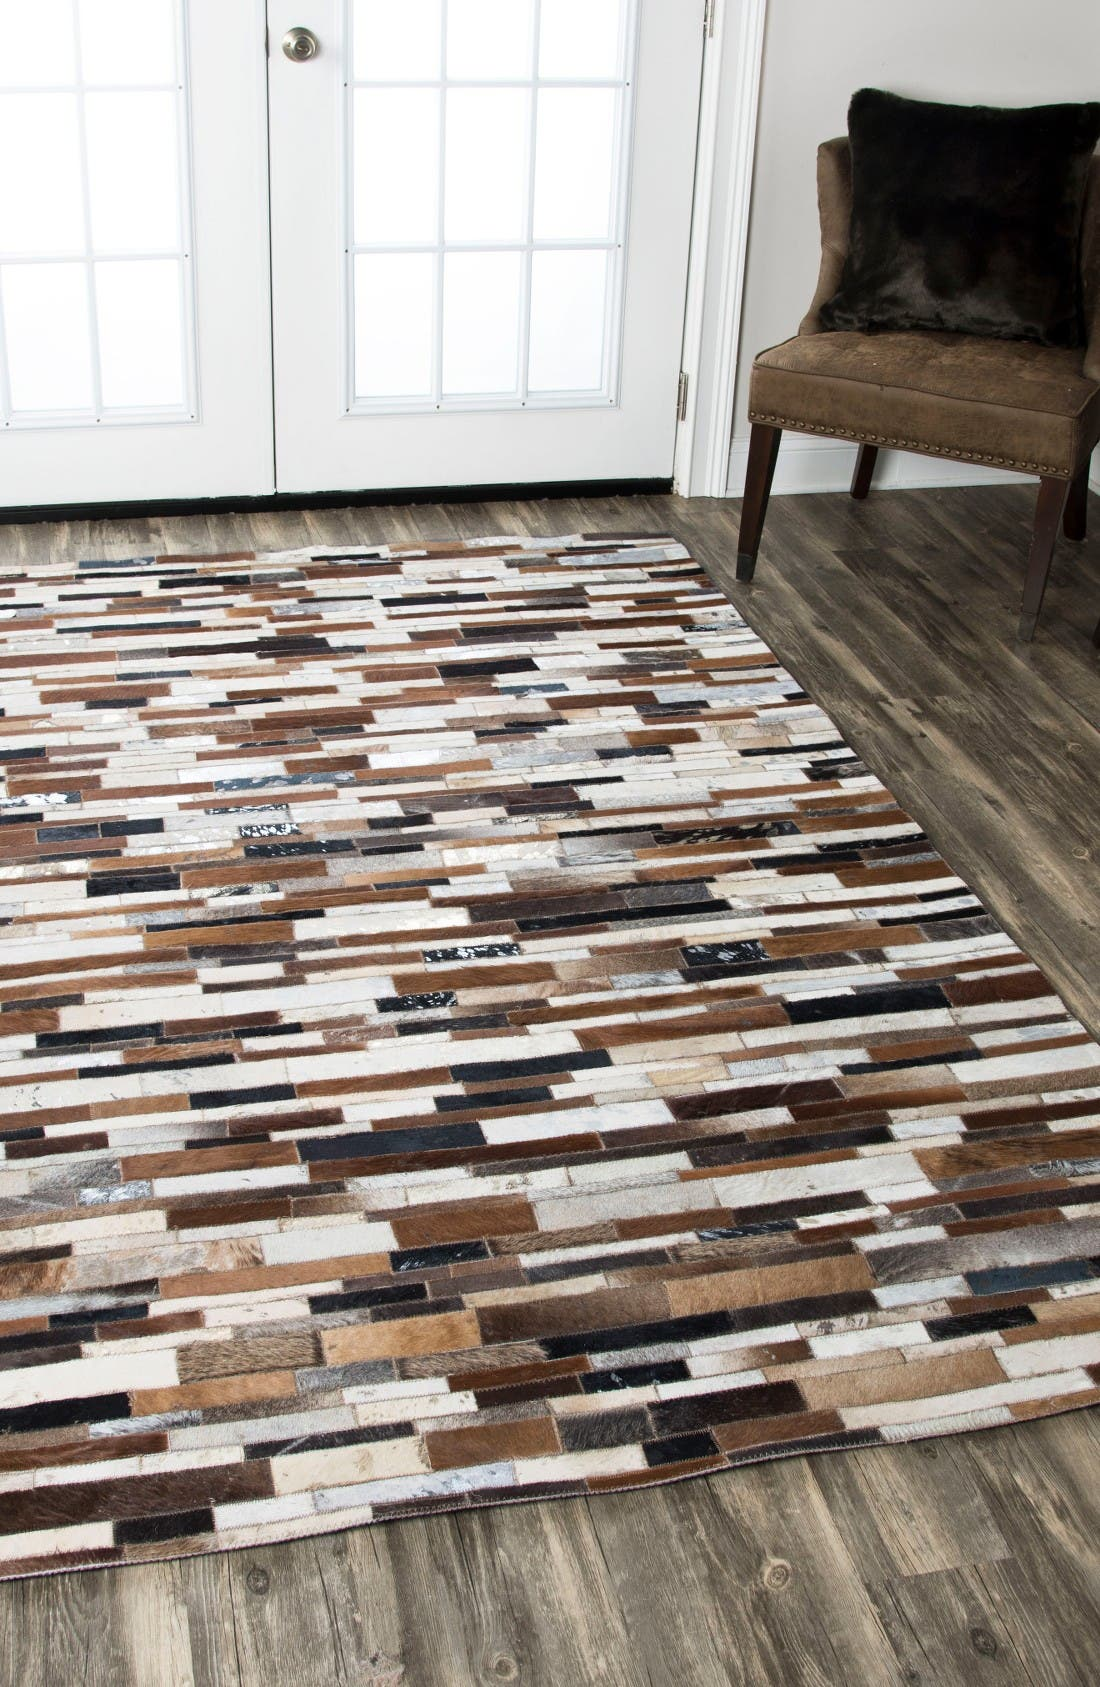 'Cumberland Pass' Hand Sewn Leather Area Rug,                             Alternate thumbnail 3, color,                             Brown/ Multi